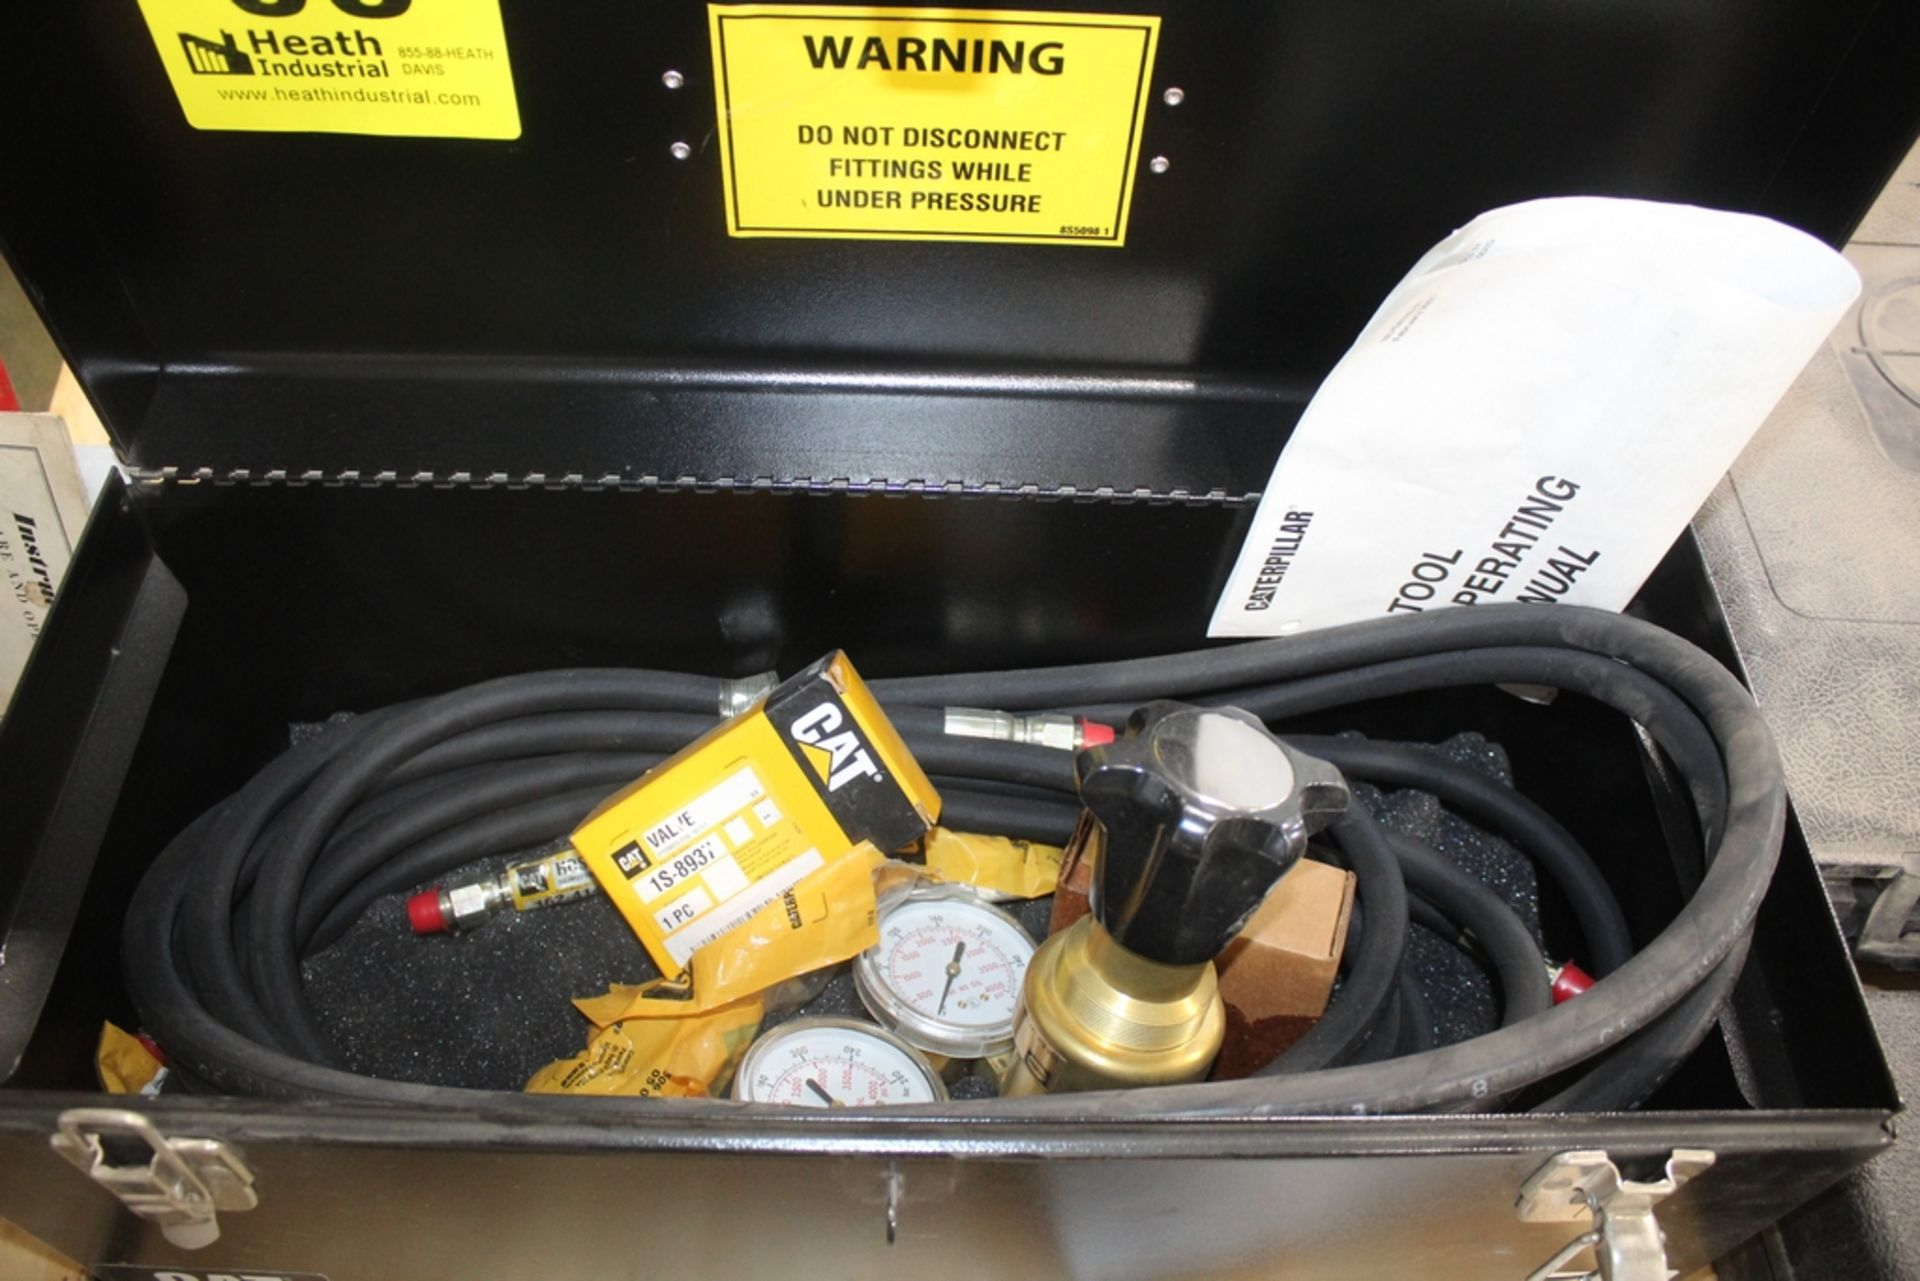 CATERPILLAR MODEL NEHS0742-01 NITROGEN CHARGING GROUP AND FITTING GROUP